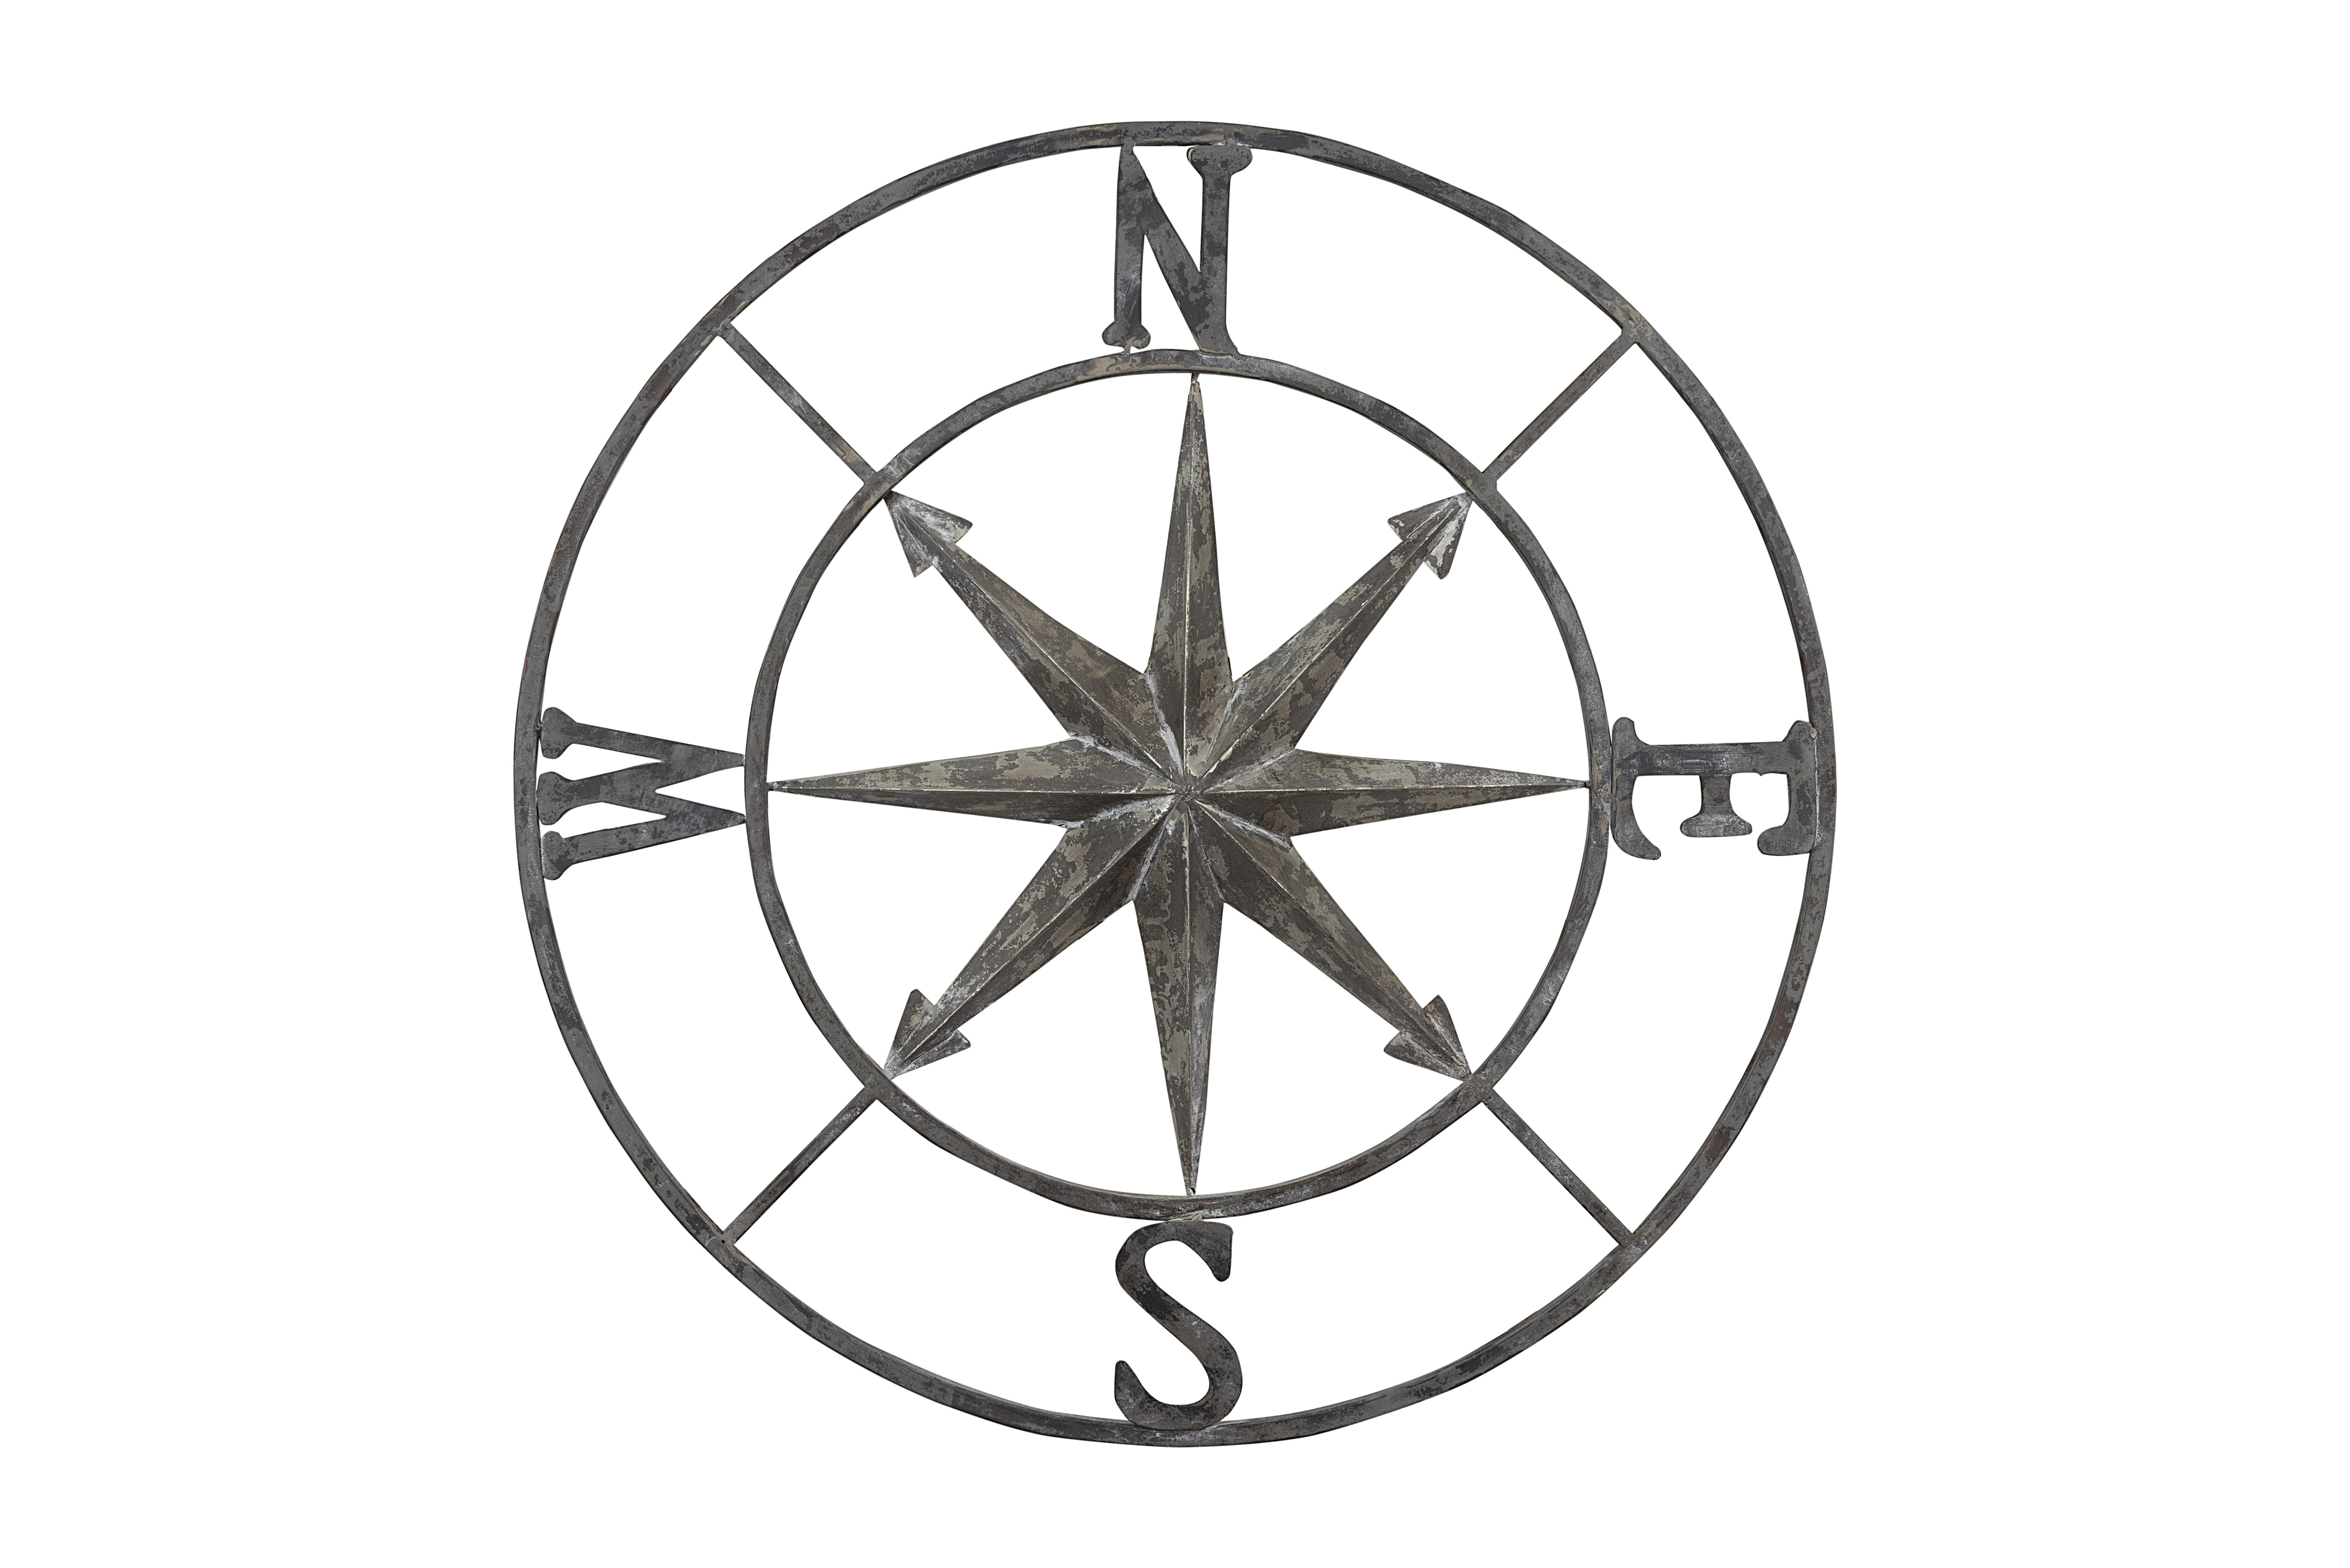 Round Compass Wall Décor Intended For Round Compass Wall Decor (Gallery 5 of 30)